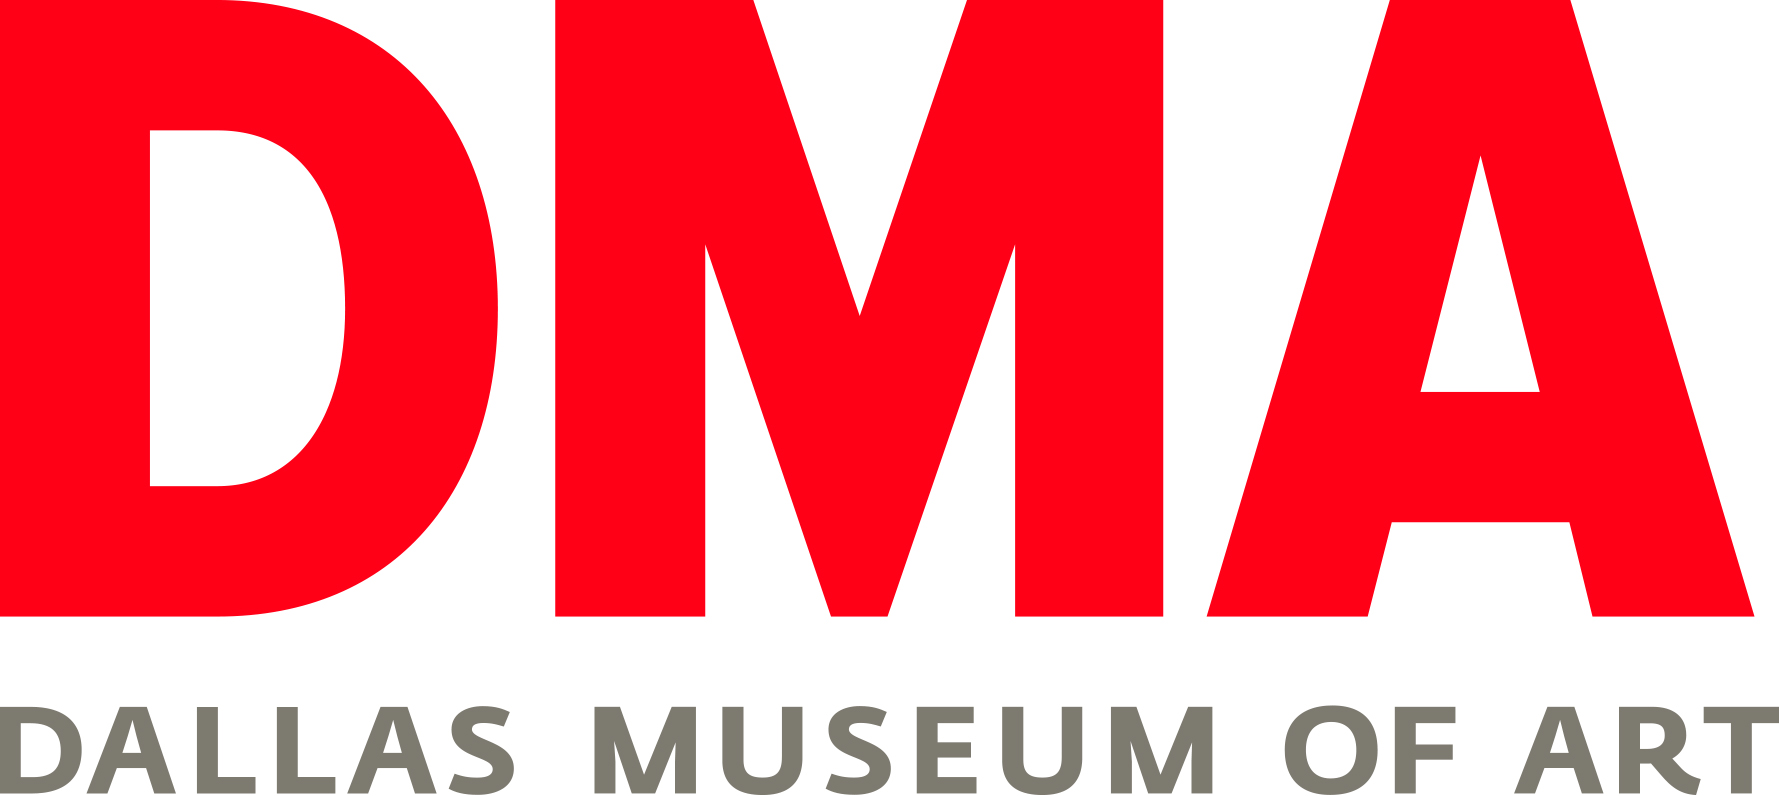 Museum Of Arts And Design Logo : Dallas museum of art logopedia fandom powered by wikia